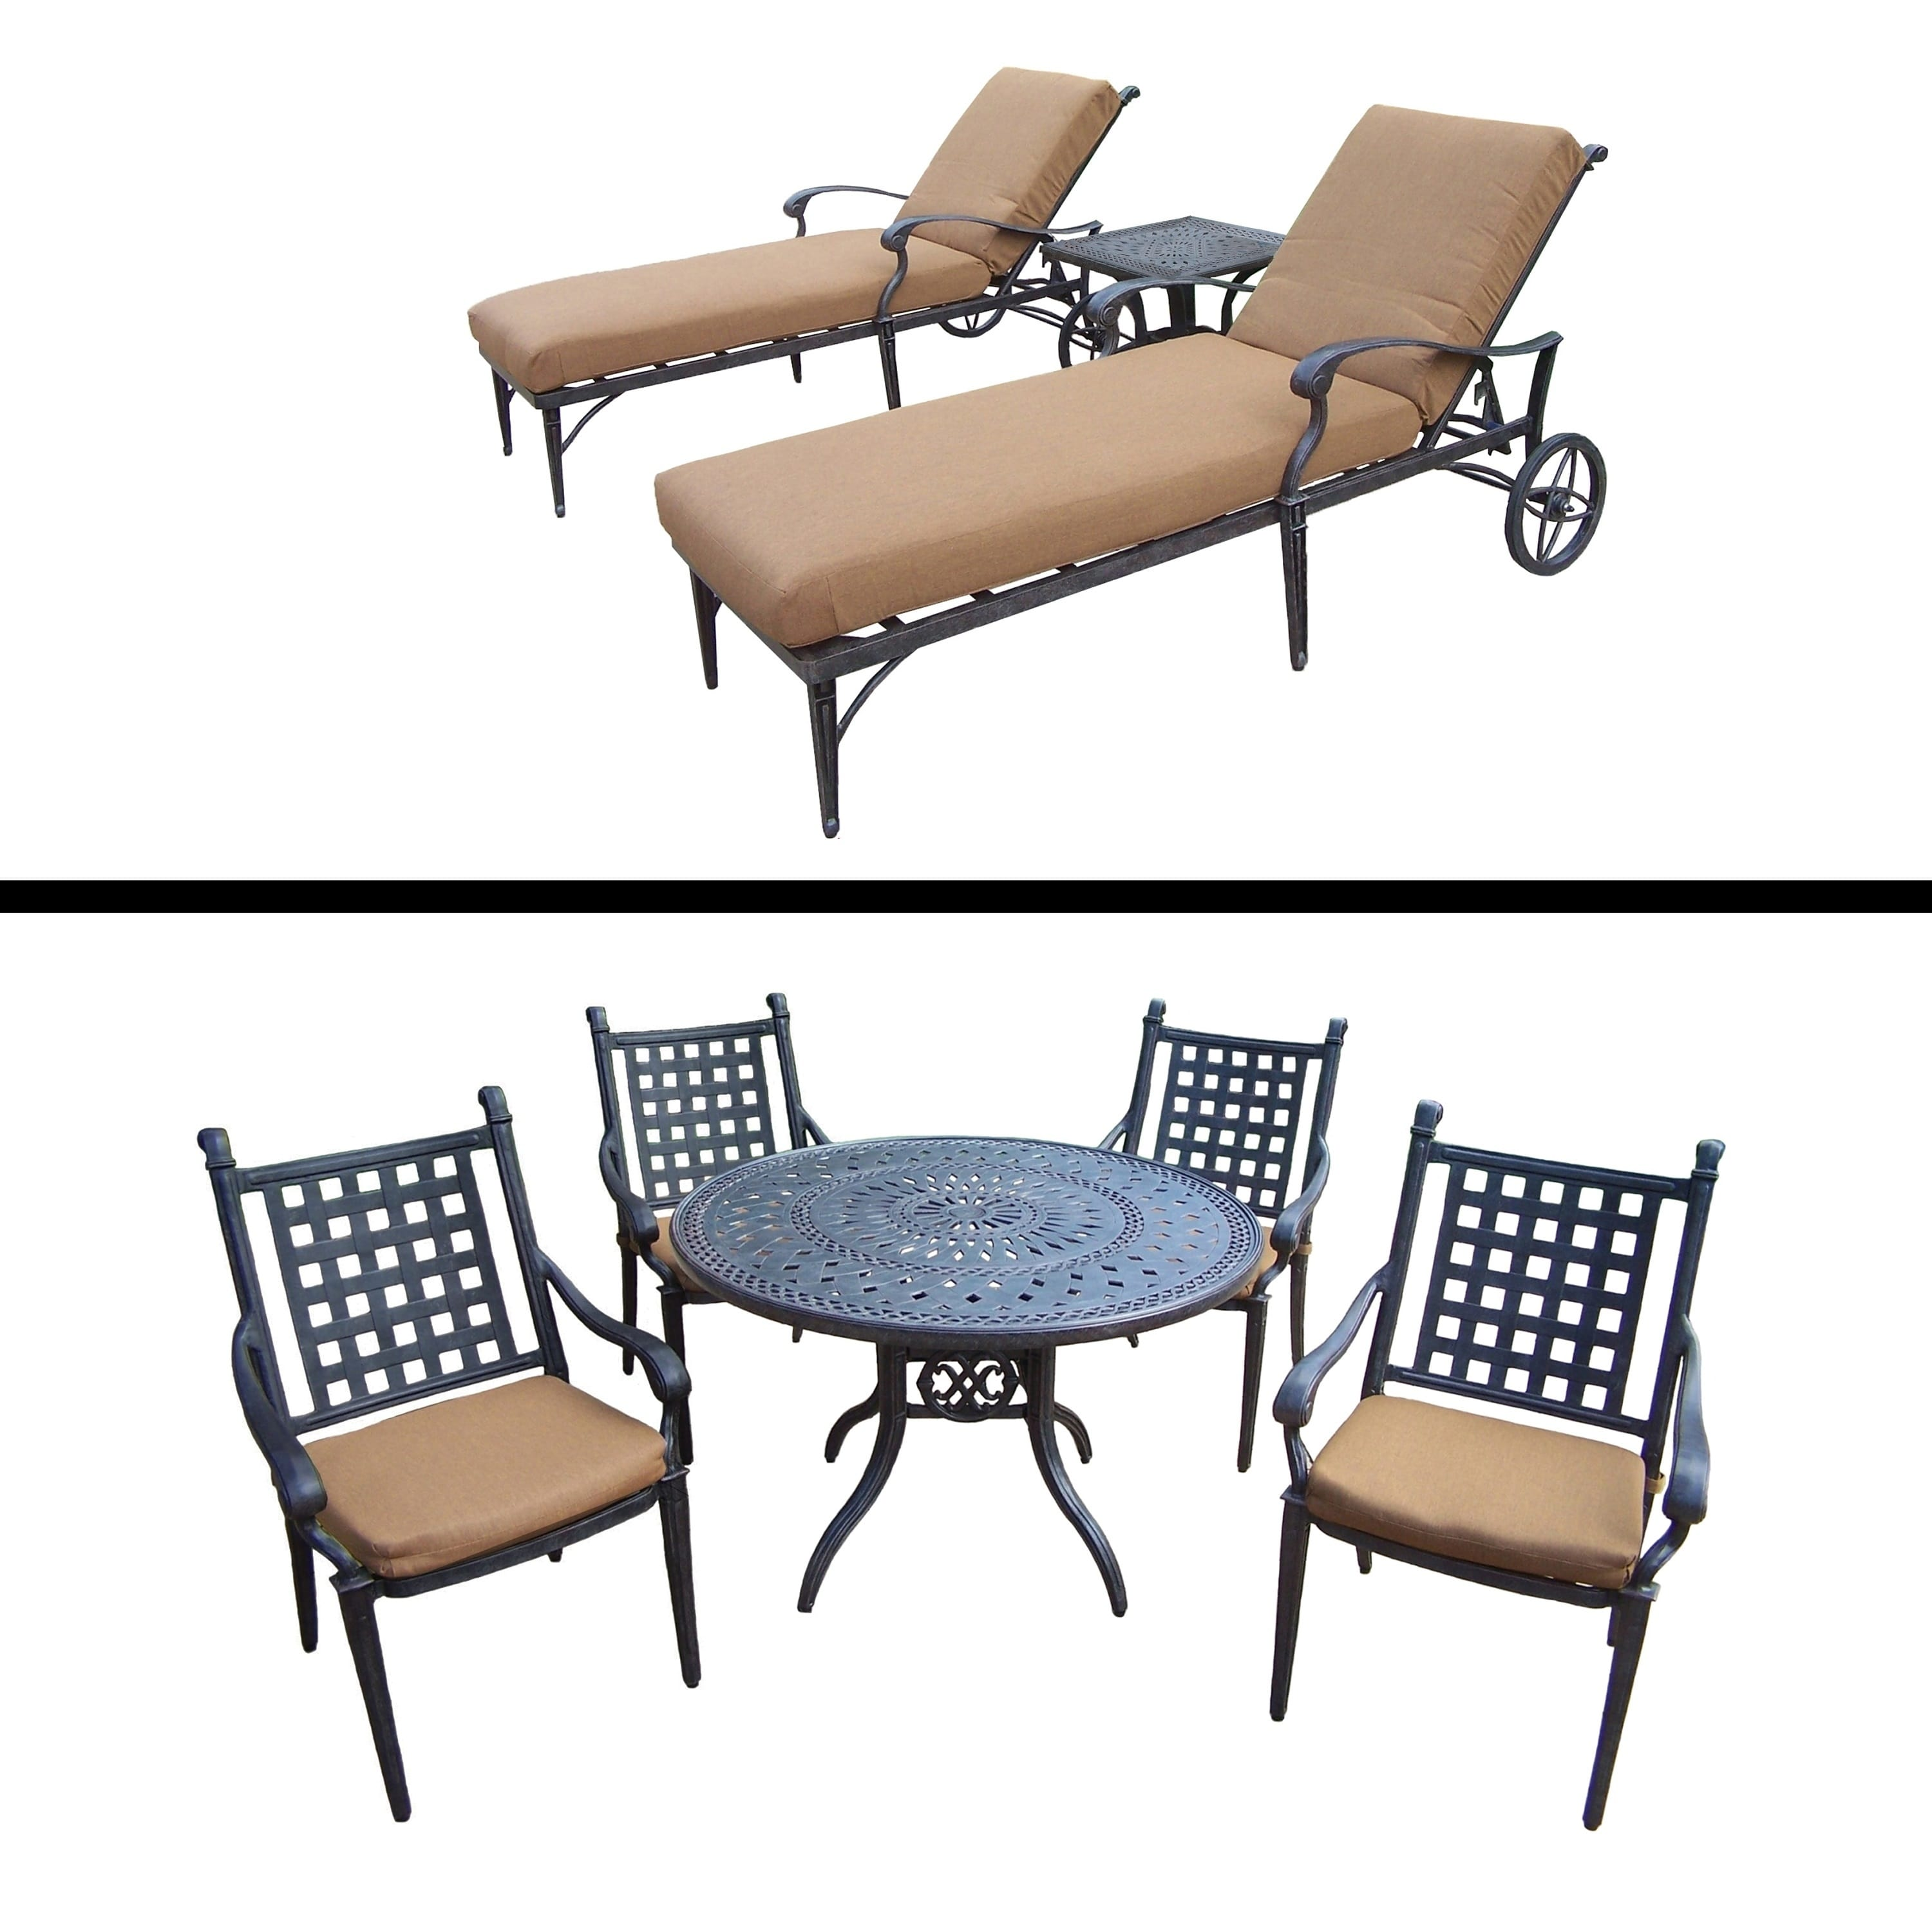 Oakland Living 5 Pc Dining Room Set and 3 Pc Lounge Set and Sunbrella Cushions by Overstock